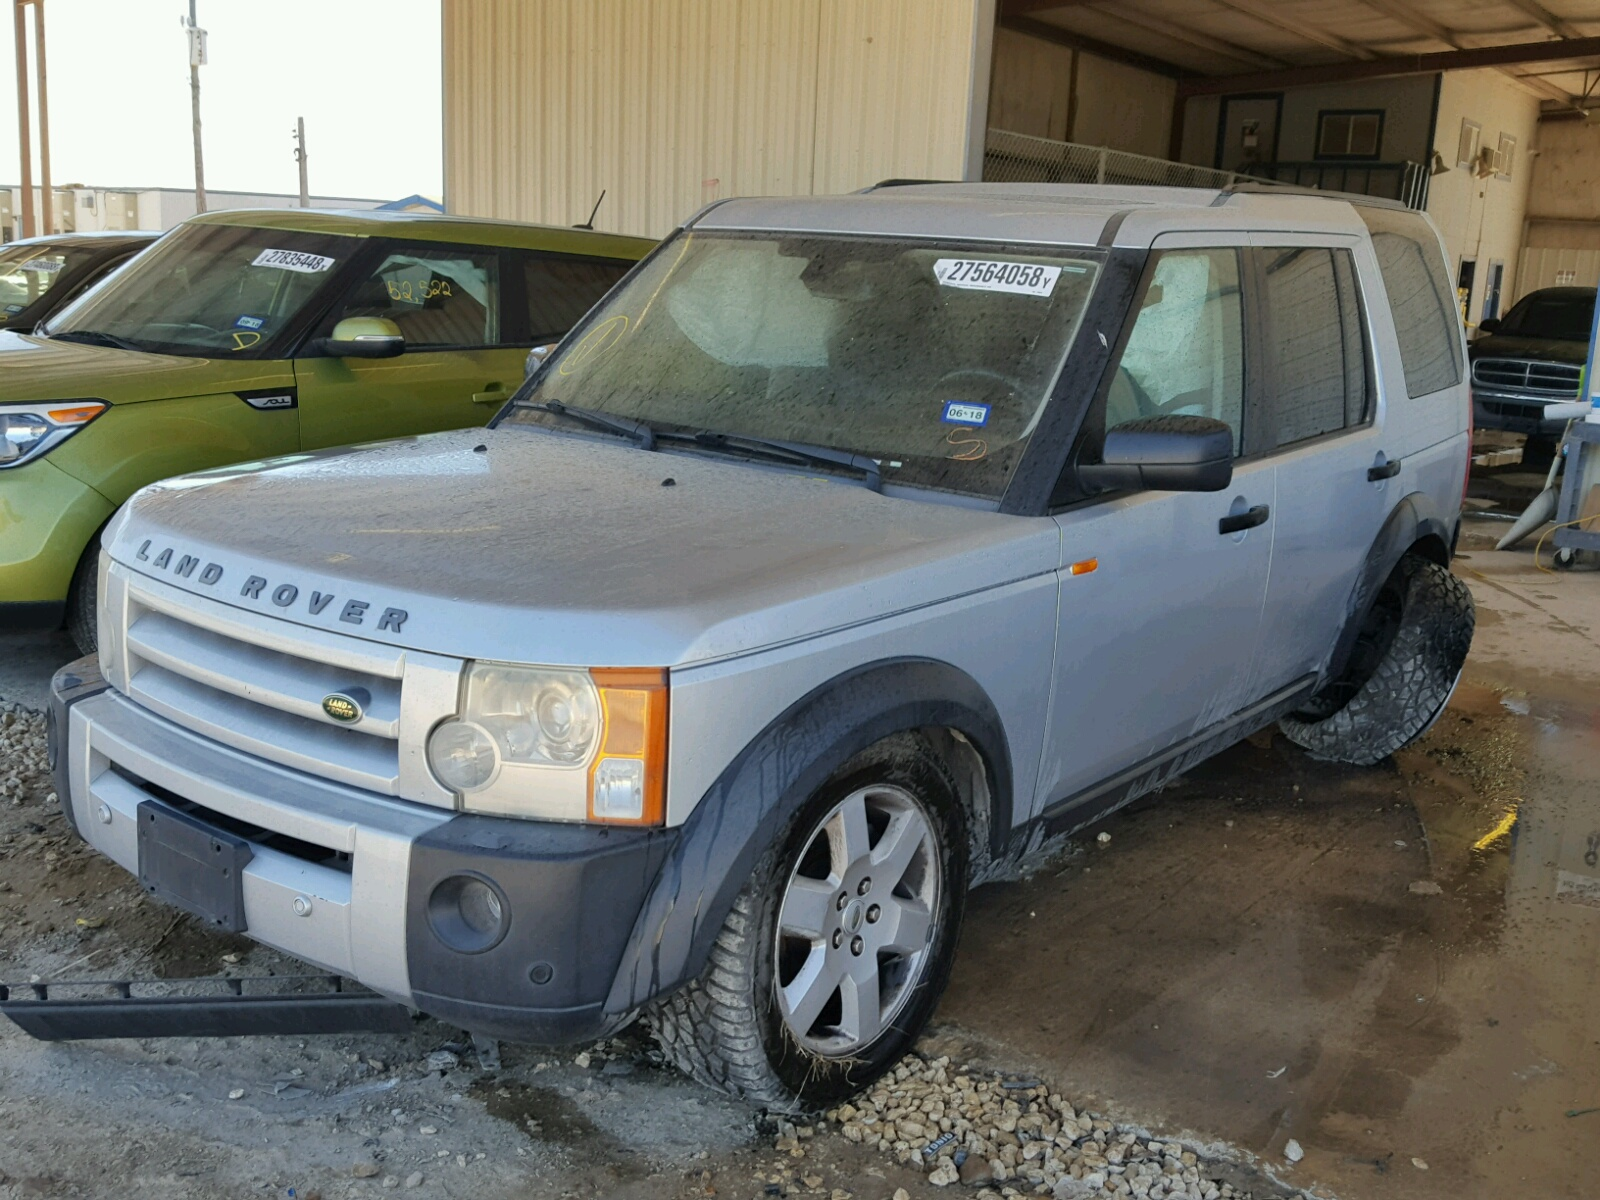 cert landrover title online land sale savannah of hse on lot se en auctions for ga salvage rover blue in auto carfinder copart